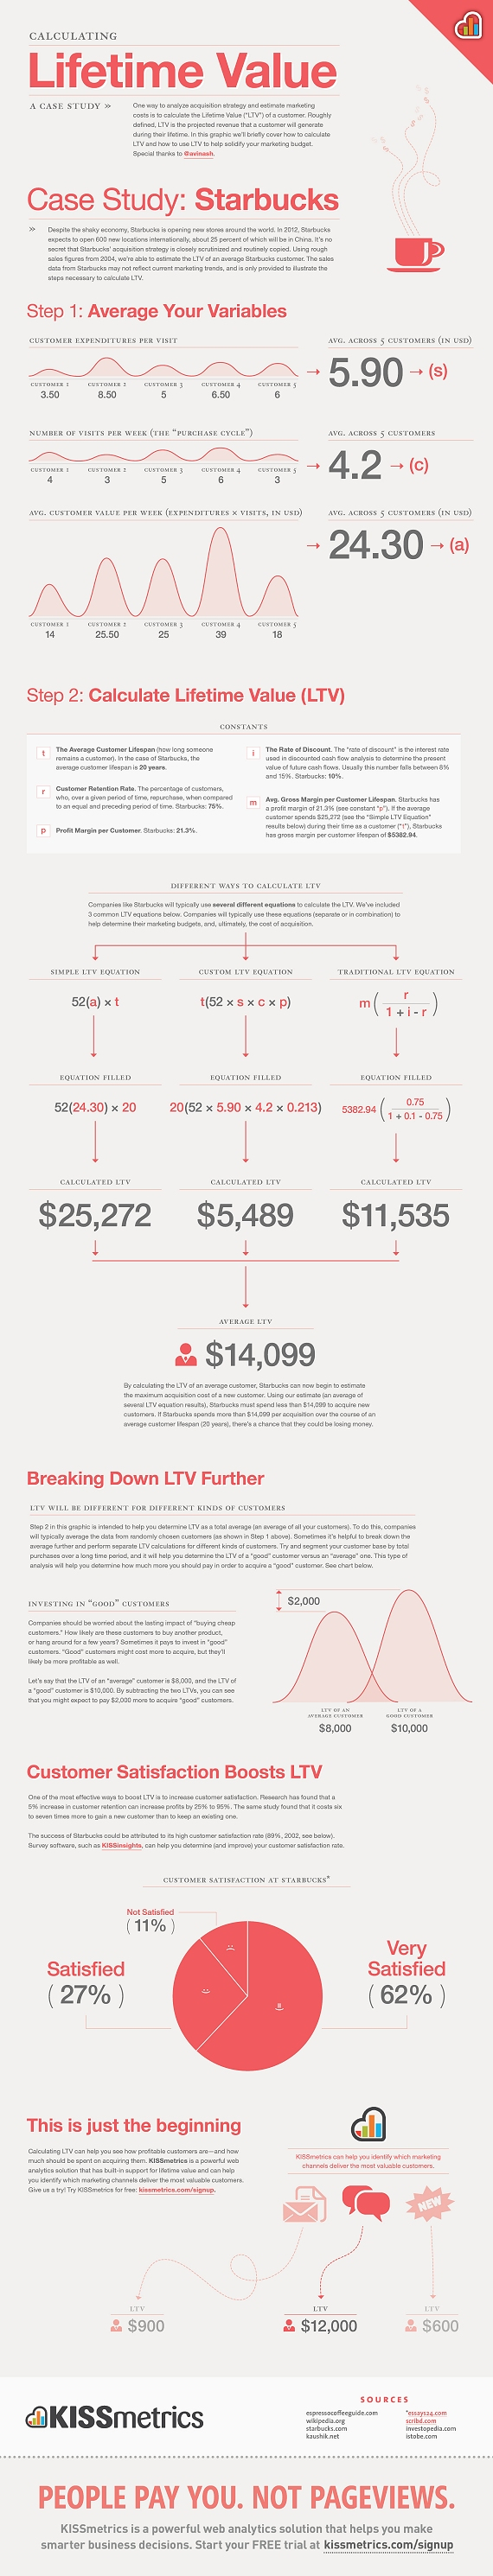 Kissmetrics LTV infographic.